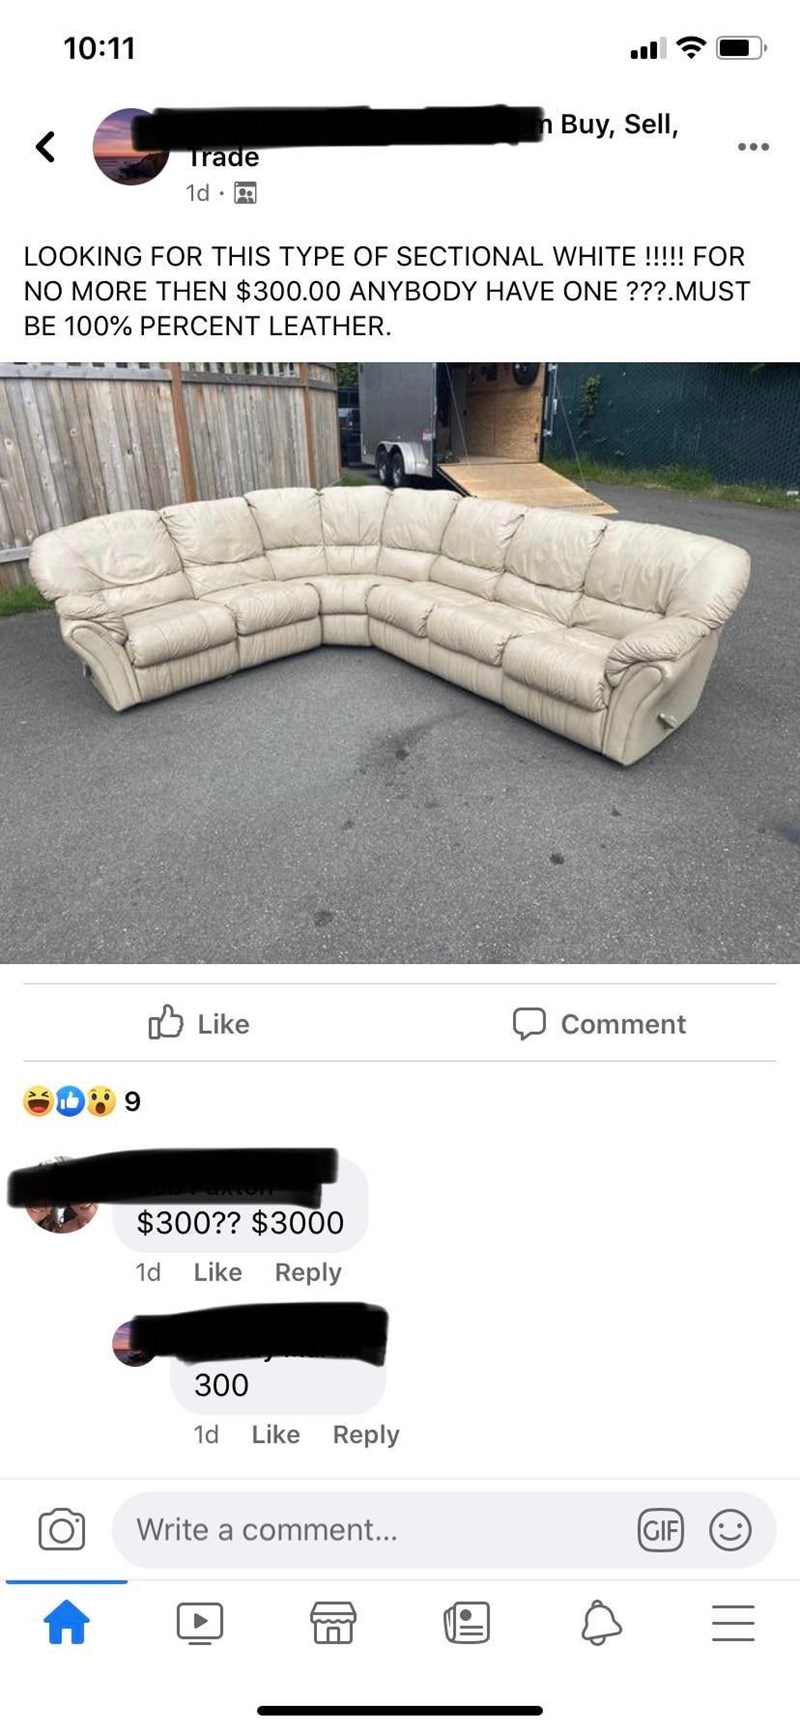 Furniture - 10:11 n Buy, Sell, ... Trade 1d : R LOOKING FOR THIS TYPE OF SECTIONAL WHITE !!!!! FOR NO MORE THEN $300.00 ANYBODY HAVE ONE ???.MUST BE 100% PERCENT LEATHER. O Like Comment $300?? $3000 1d Like Reply 300 1d Like Reply Write a comment... (GIF) (:) || ll